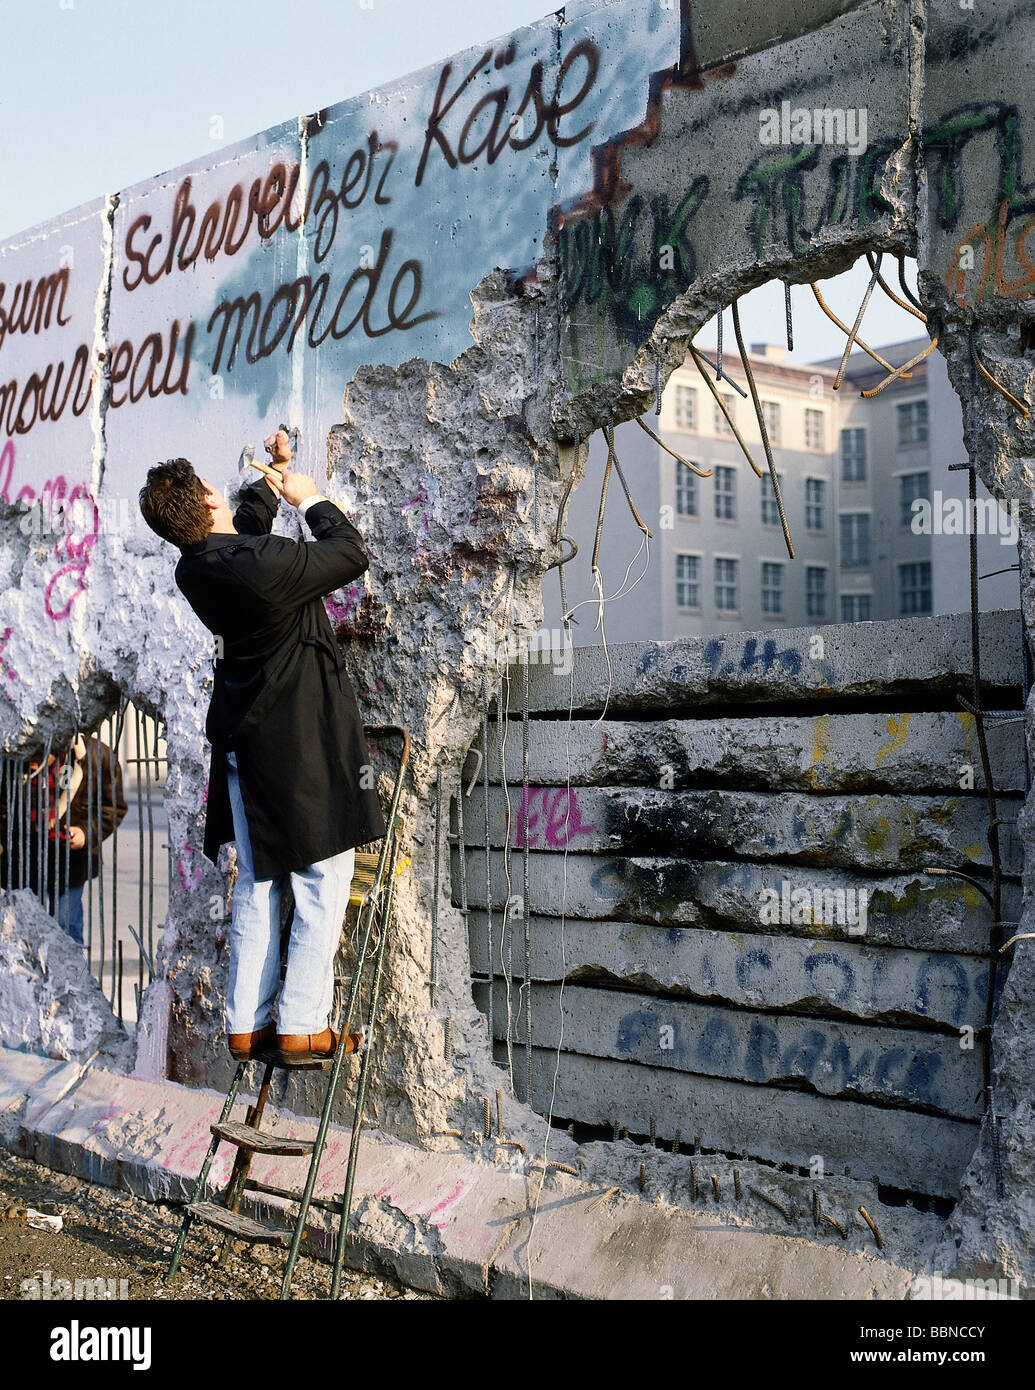 berlin wall research paper Berlin wall a proof of failure by tunnelled or were smuggled in vehicles or brazened through checkpoints with false papers how fall of the berlin wall paved.